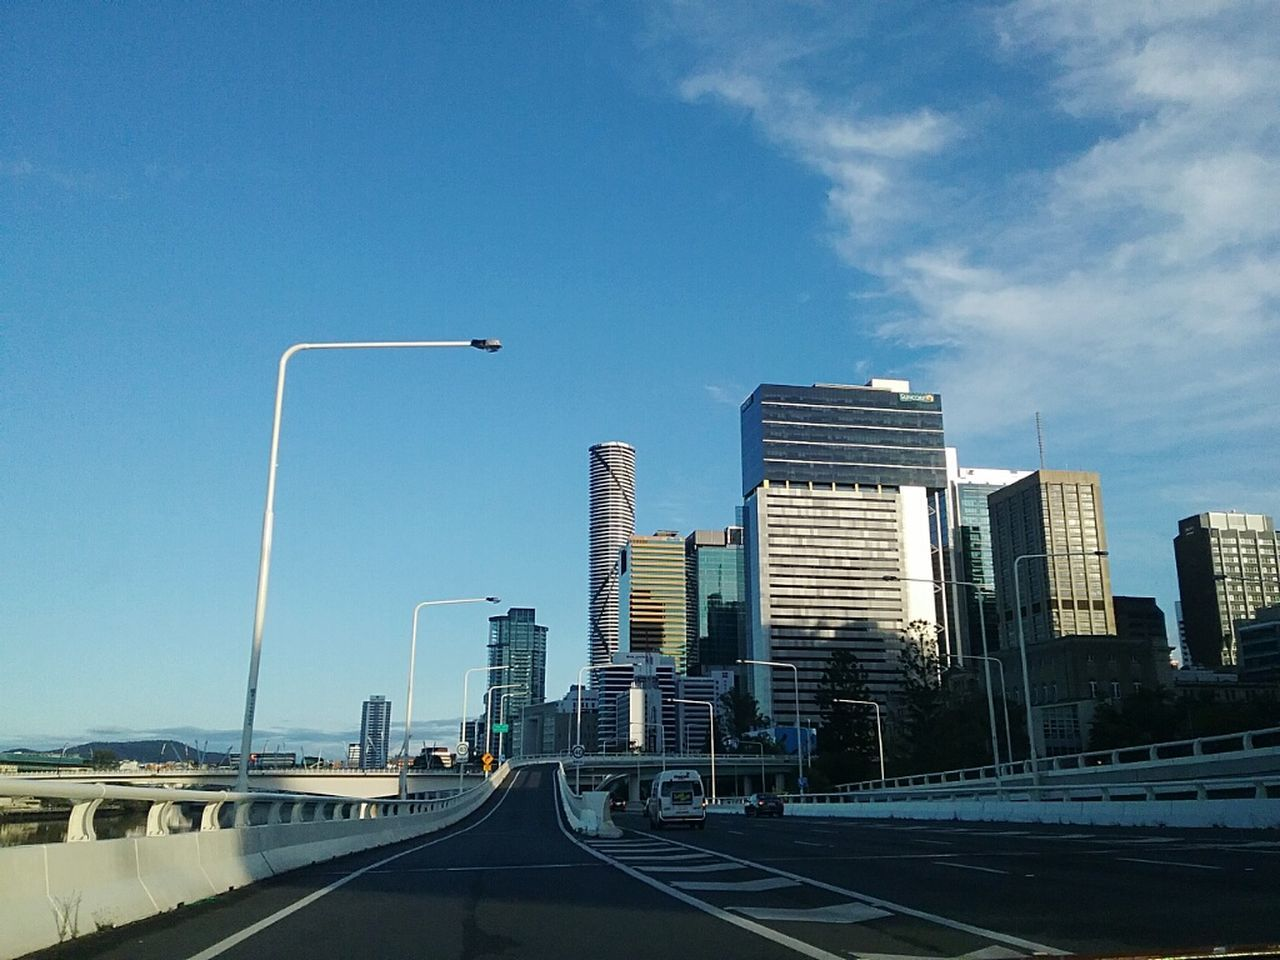 architecture, skyscraper, city, road, built structure, building exterior, transportation, the way forward, street light, modern, sky, day, city life, street, outdoors, cityscape, travel destinations, no people, road sign, clear sky, urban skyline